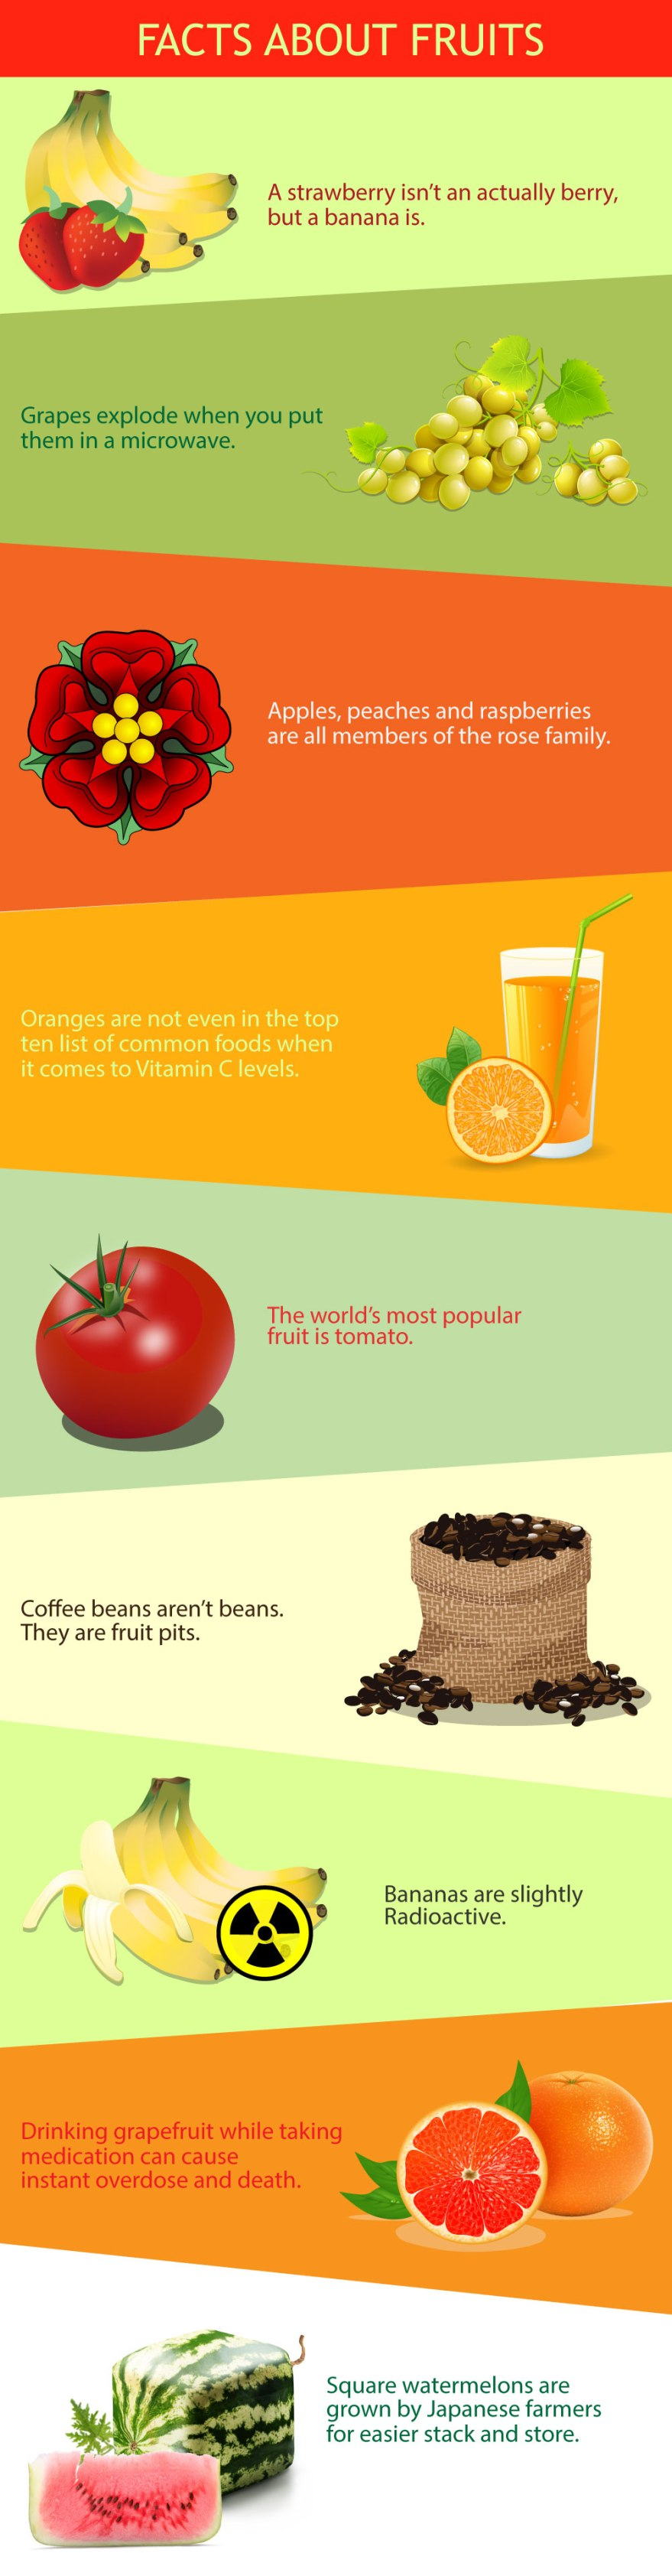 Info-Facts_about_fruits